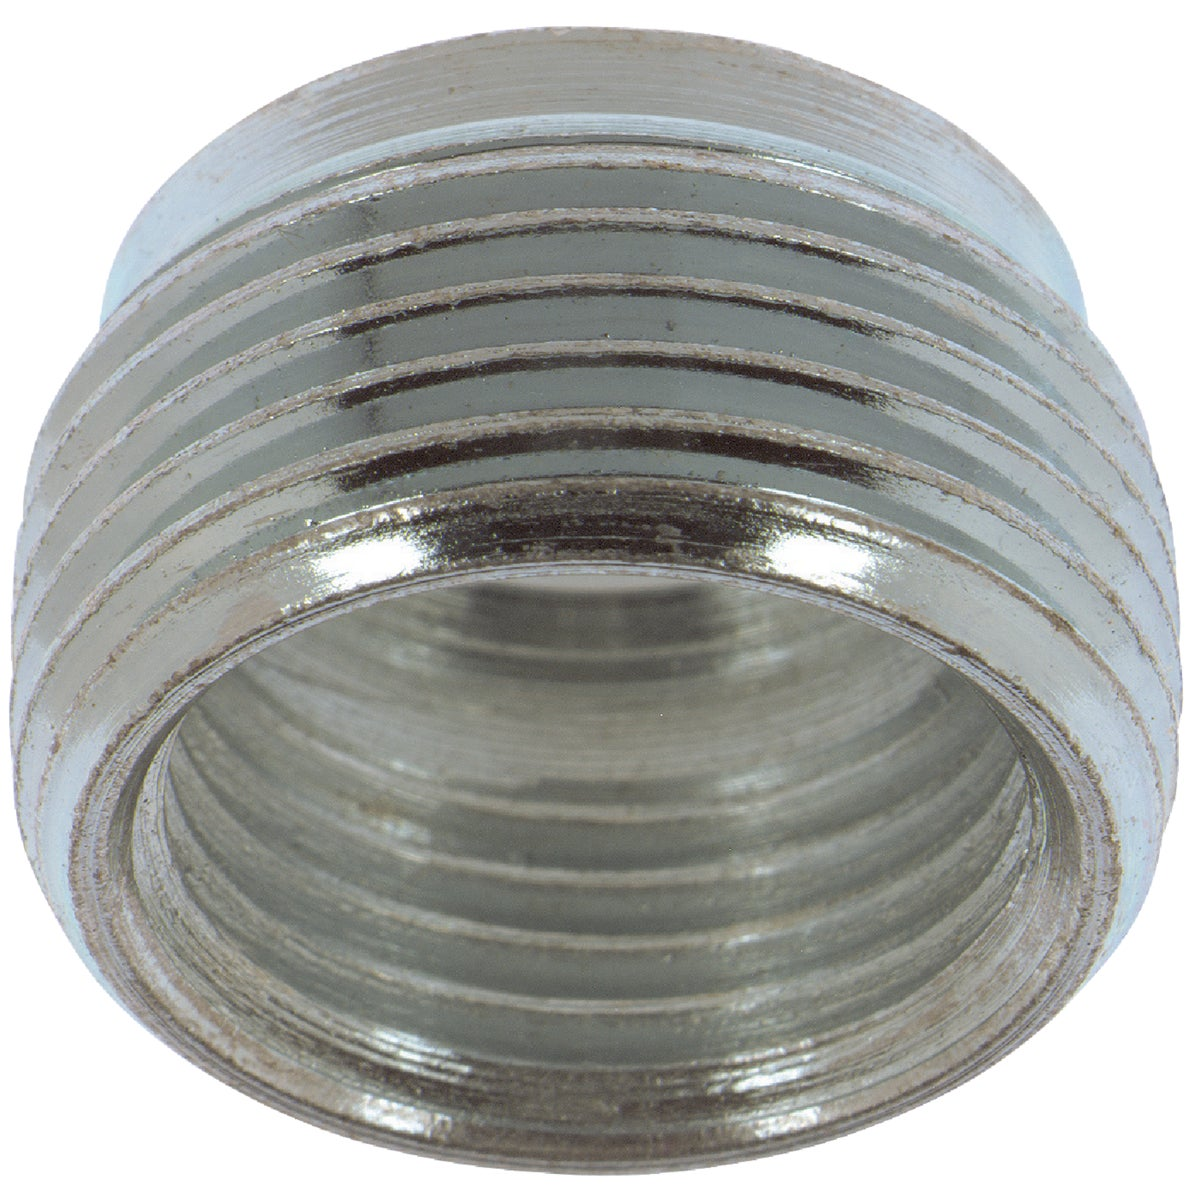 1X3/4 REDUCE BUSHING - RB1321 by Thomas & Betts